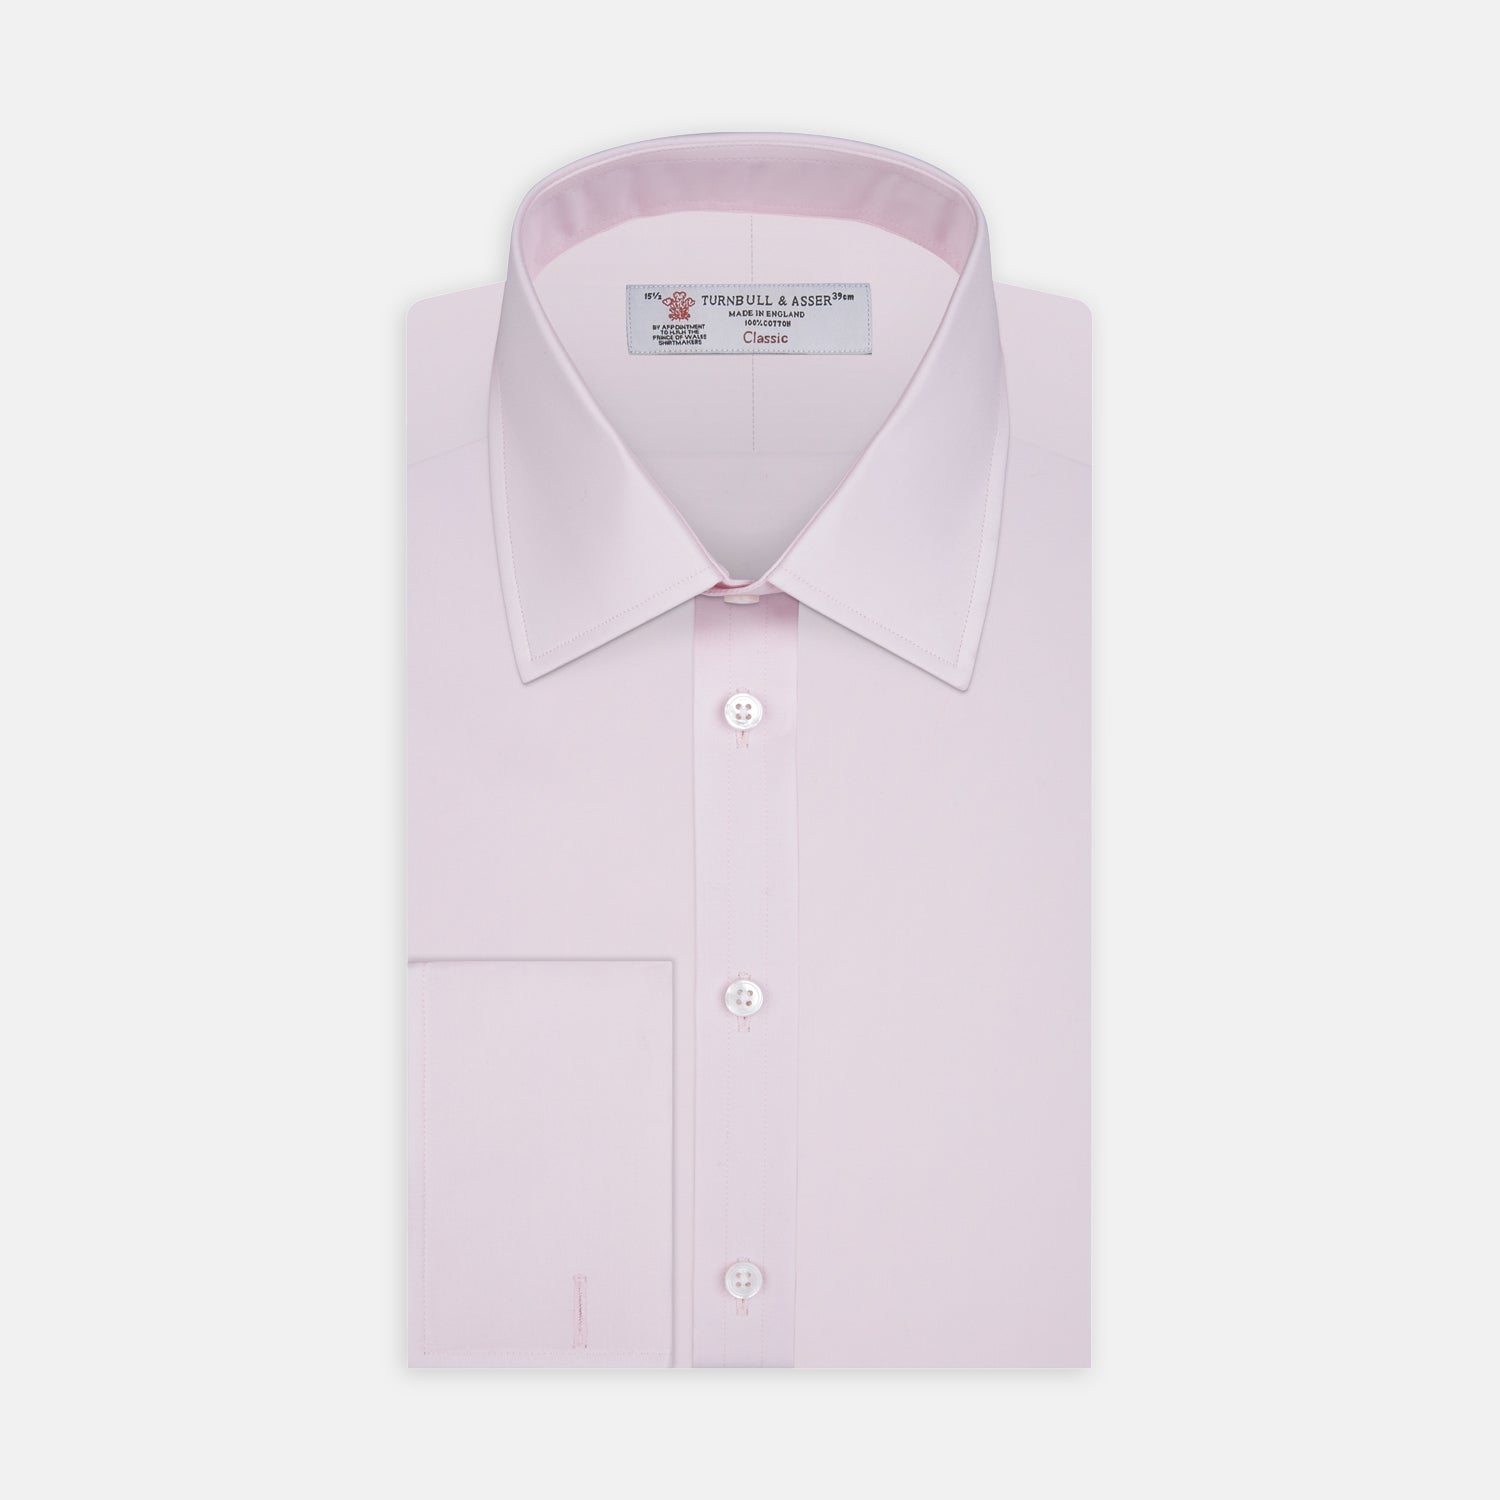 Pink Cotton Shirt with T&A Collar and Double Cuffs - 19.0 from Turnbull & Asser